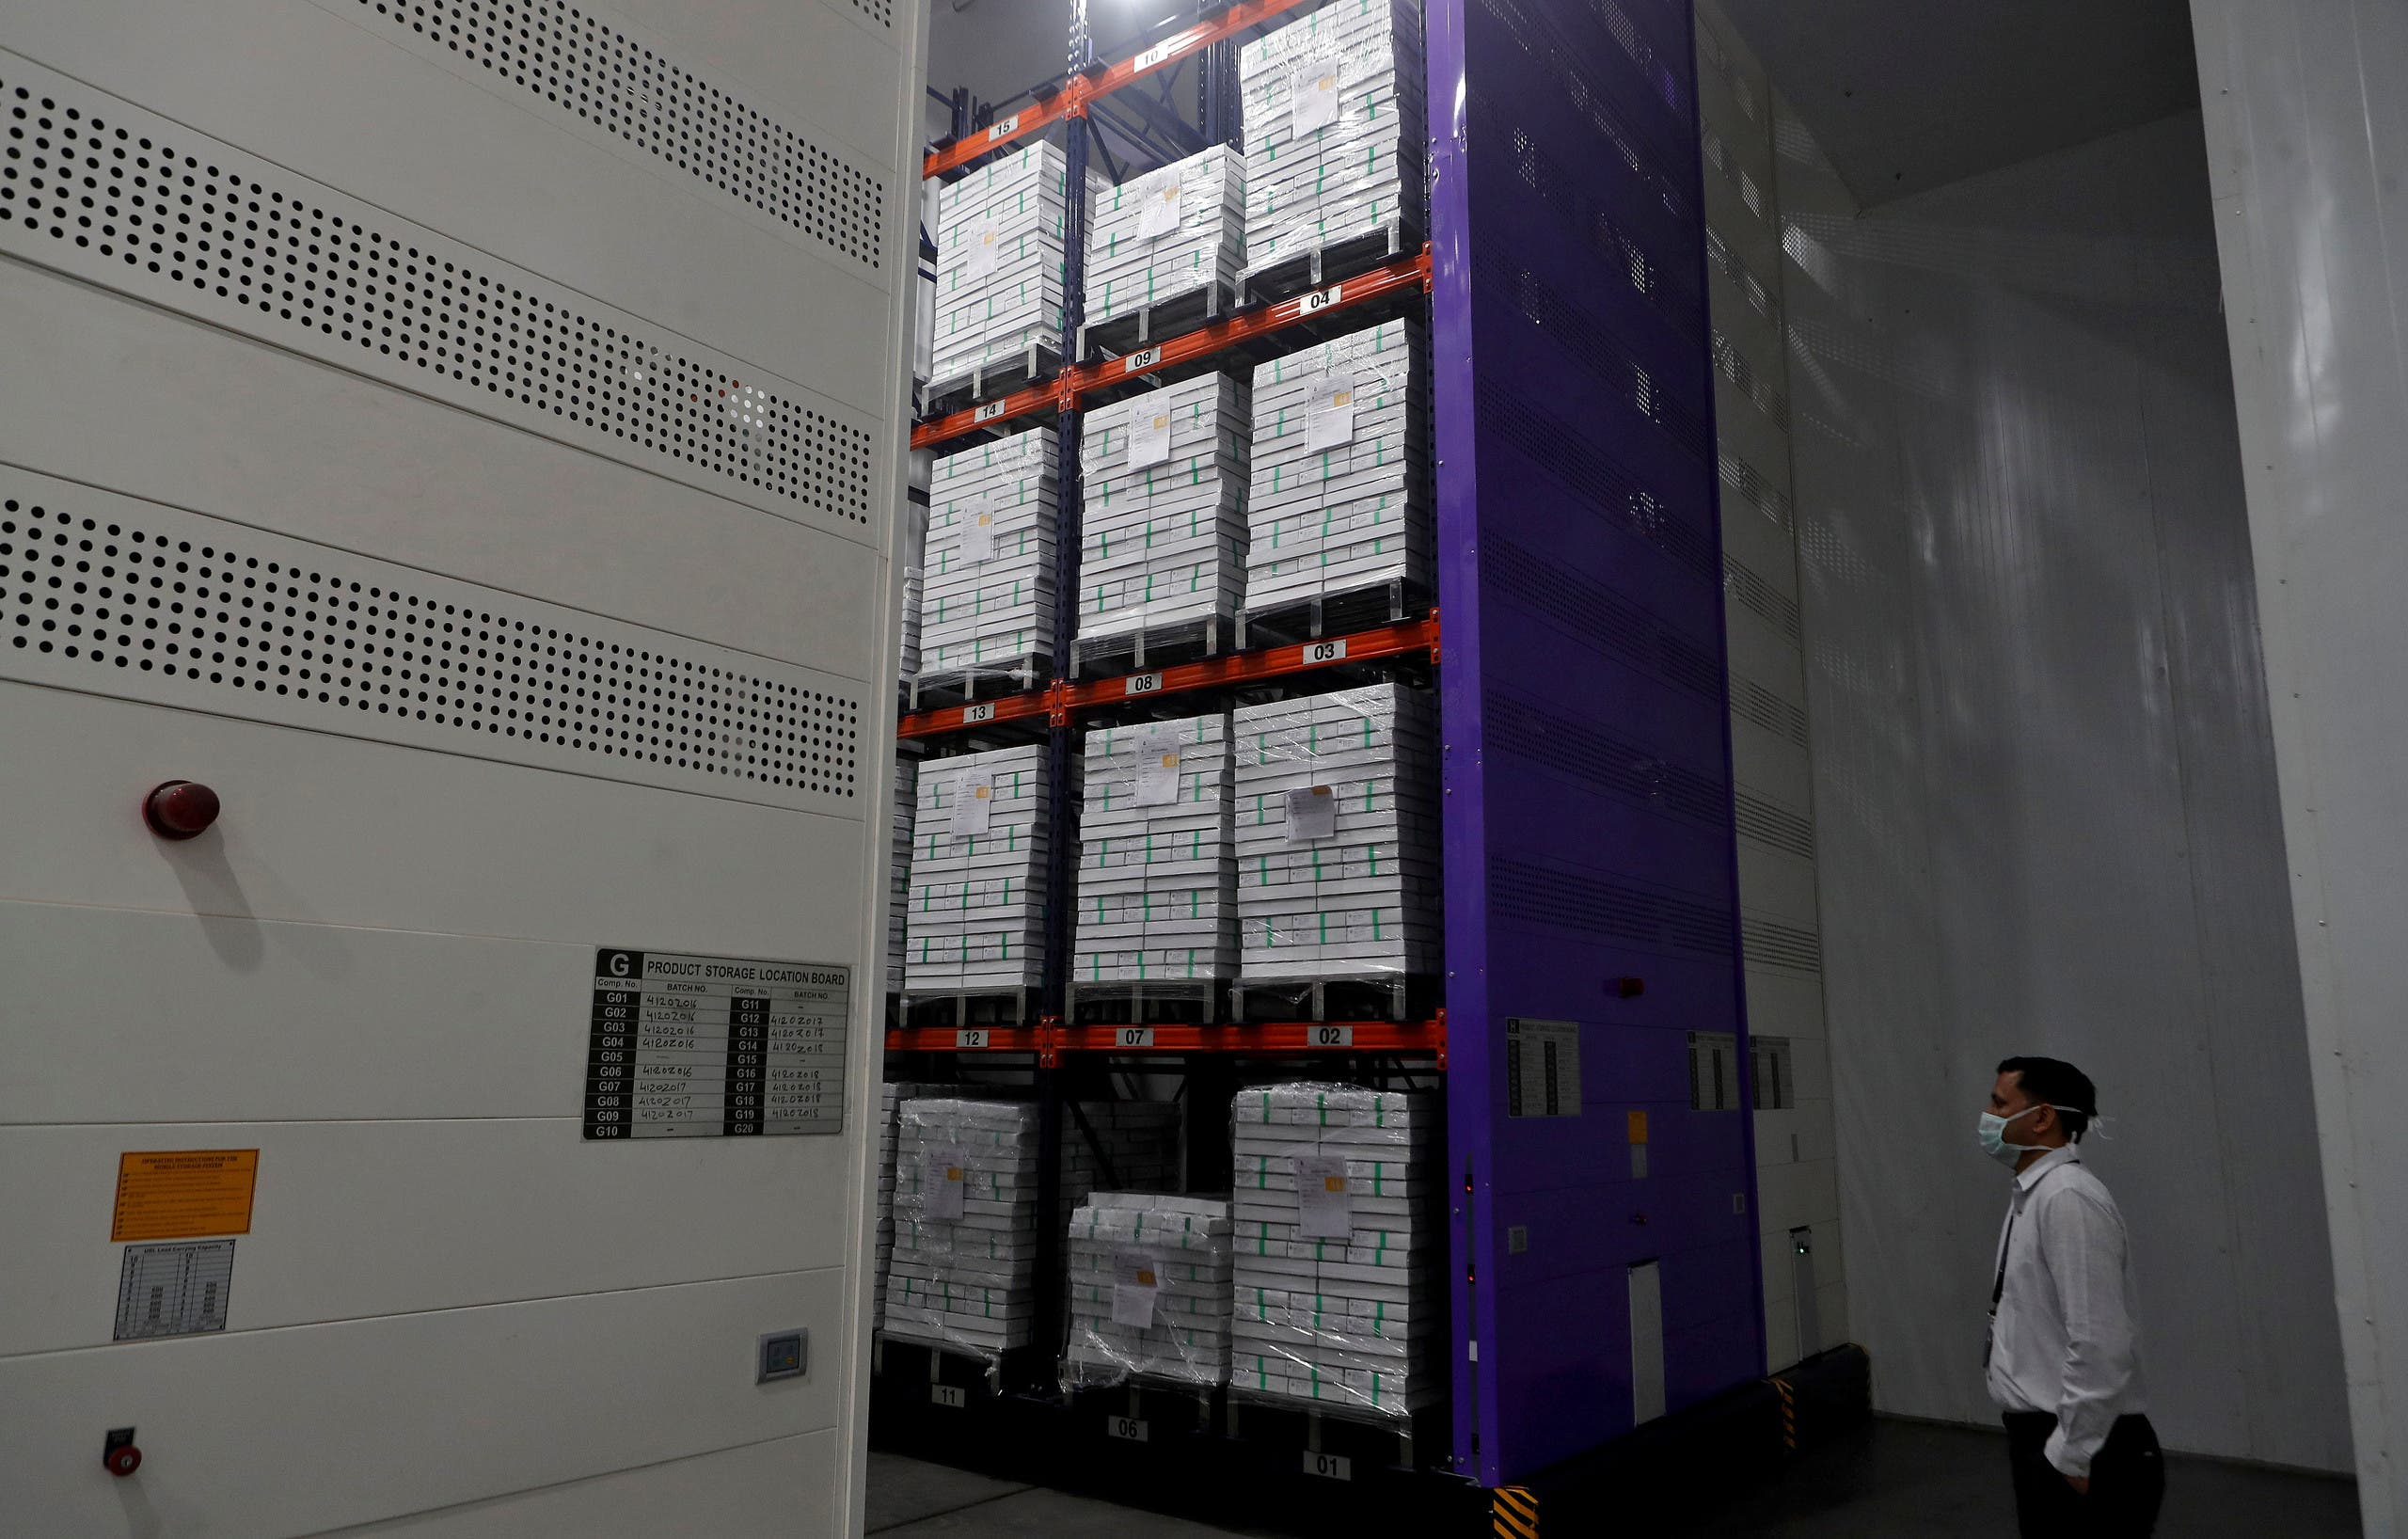 A man wearing a protective mask stands next to boxes containing the vials of AstraZeneca's COVISHIELD, coronavirus disease (COVID-19) vaccine, inside a cold room at the Serum Institute of India, Pune, India, on November 30, 2020. (Reuters)